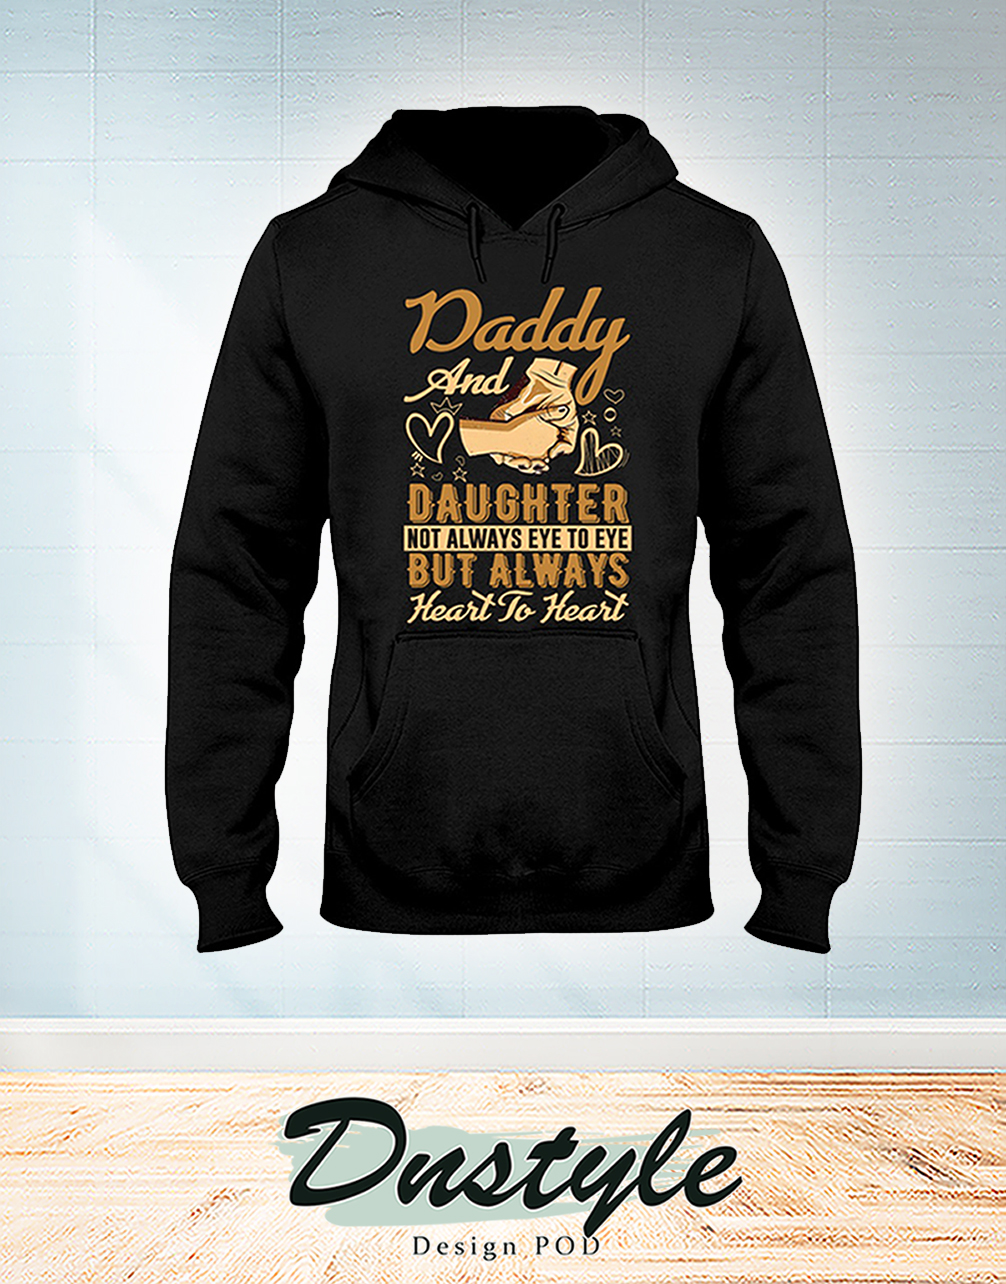 Holding hands Daddy and daughter not alway eye to eye but alway heart to heart hoodie